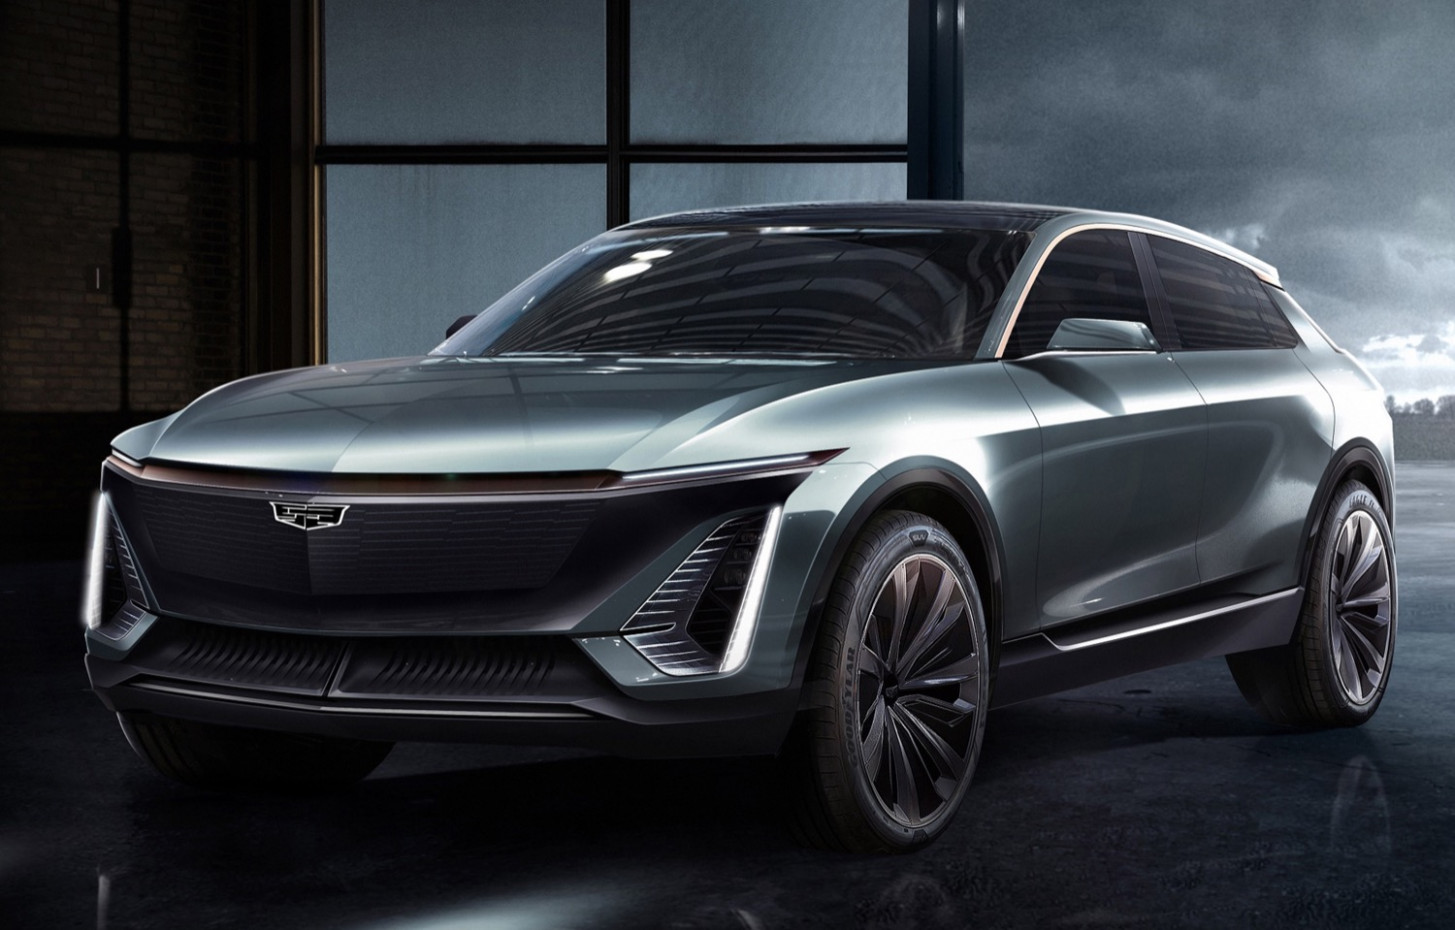 Redesign and Concept When Will The 2022 Cadillac Xt5 Be Available